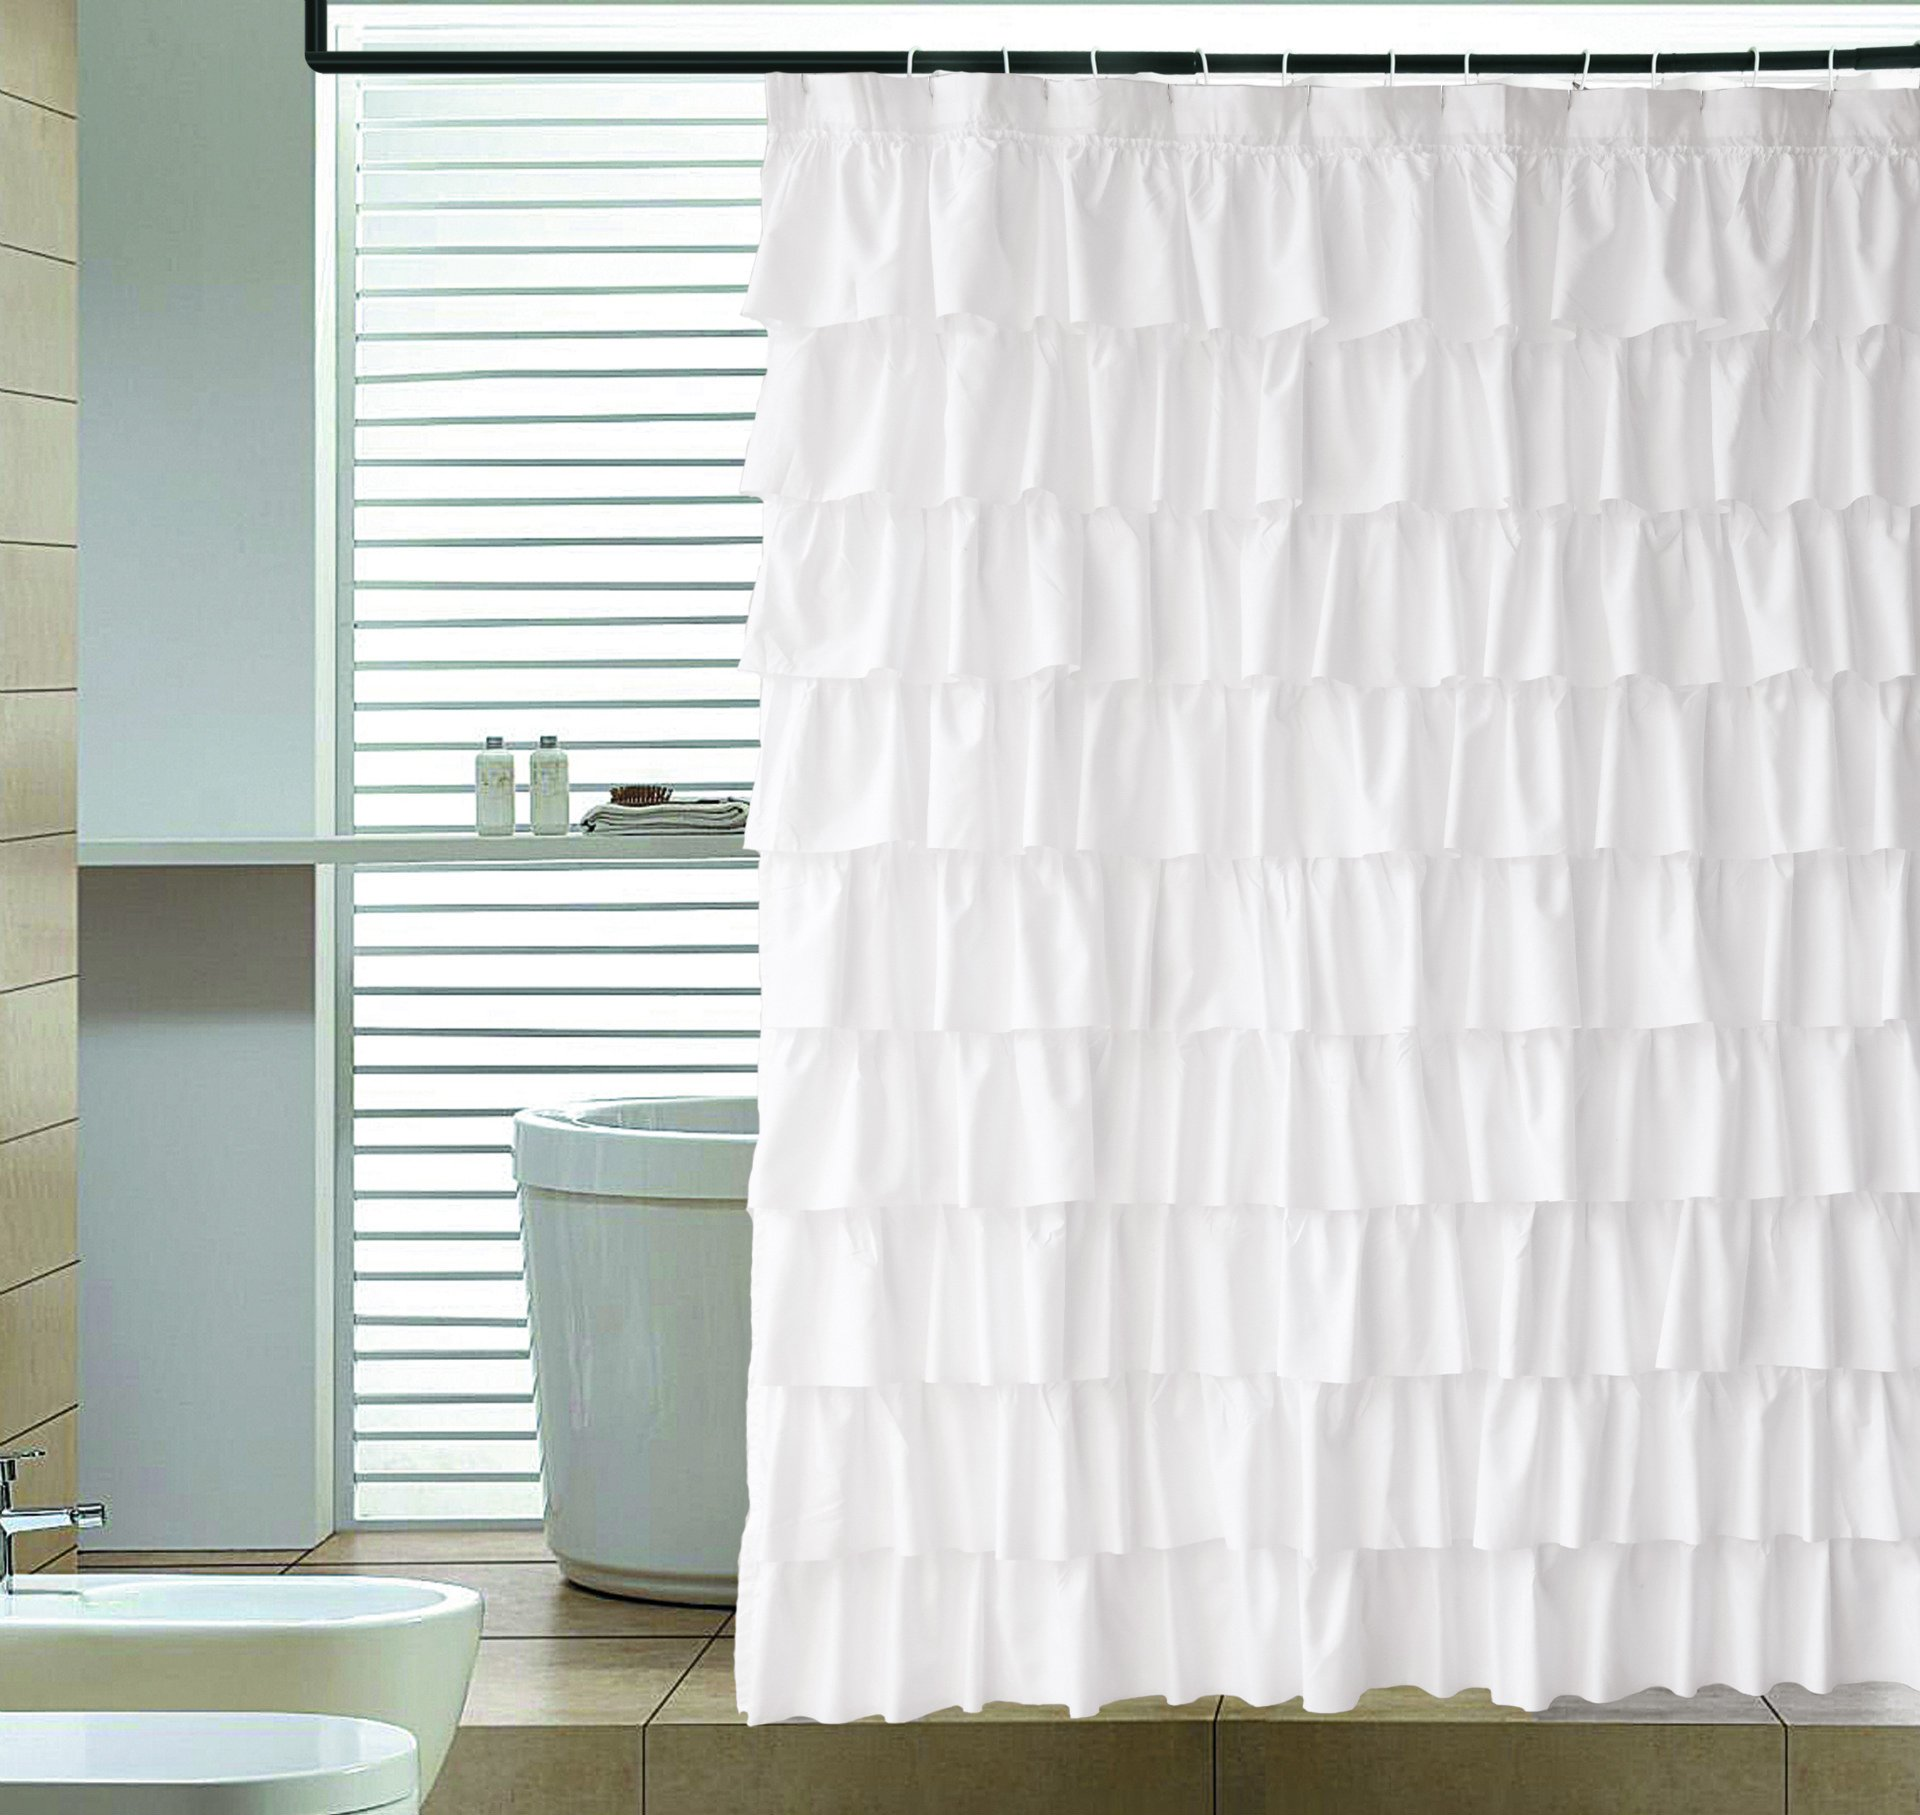 Ameritex Ruffle Shower Curtain Waterproof Home Decor | Soft Polyester, Decorative Bathroom Accessories | Great for Showers & Bathtubs |Large Size,72'' x 72''